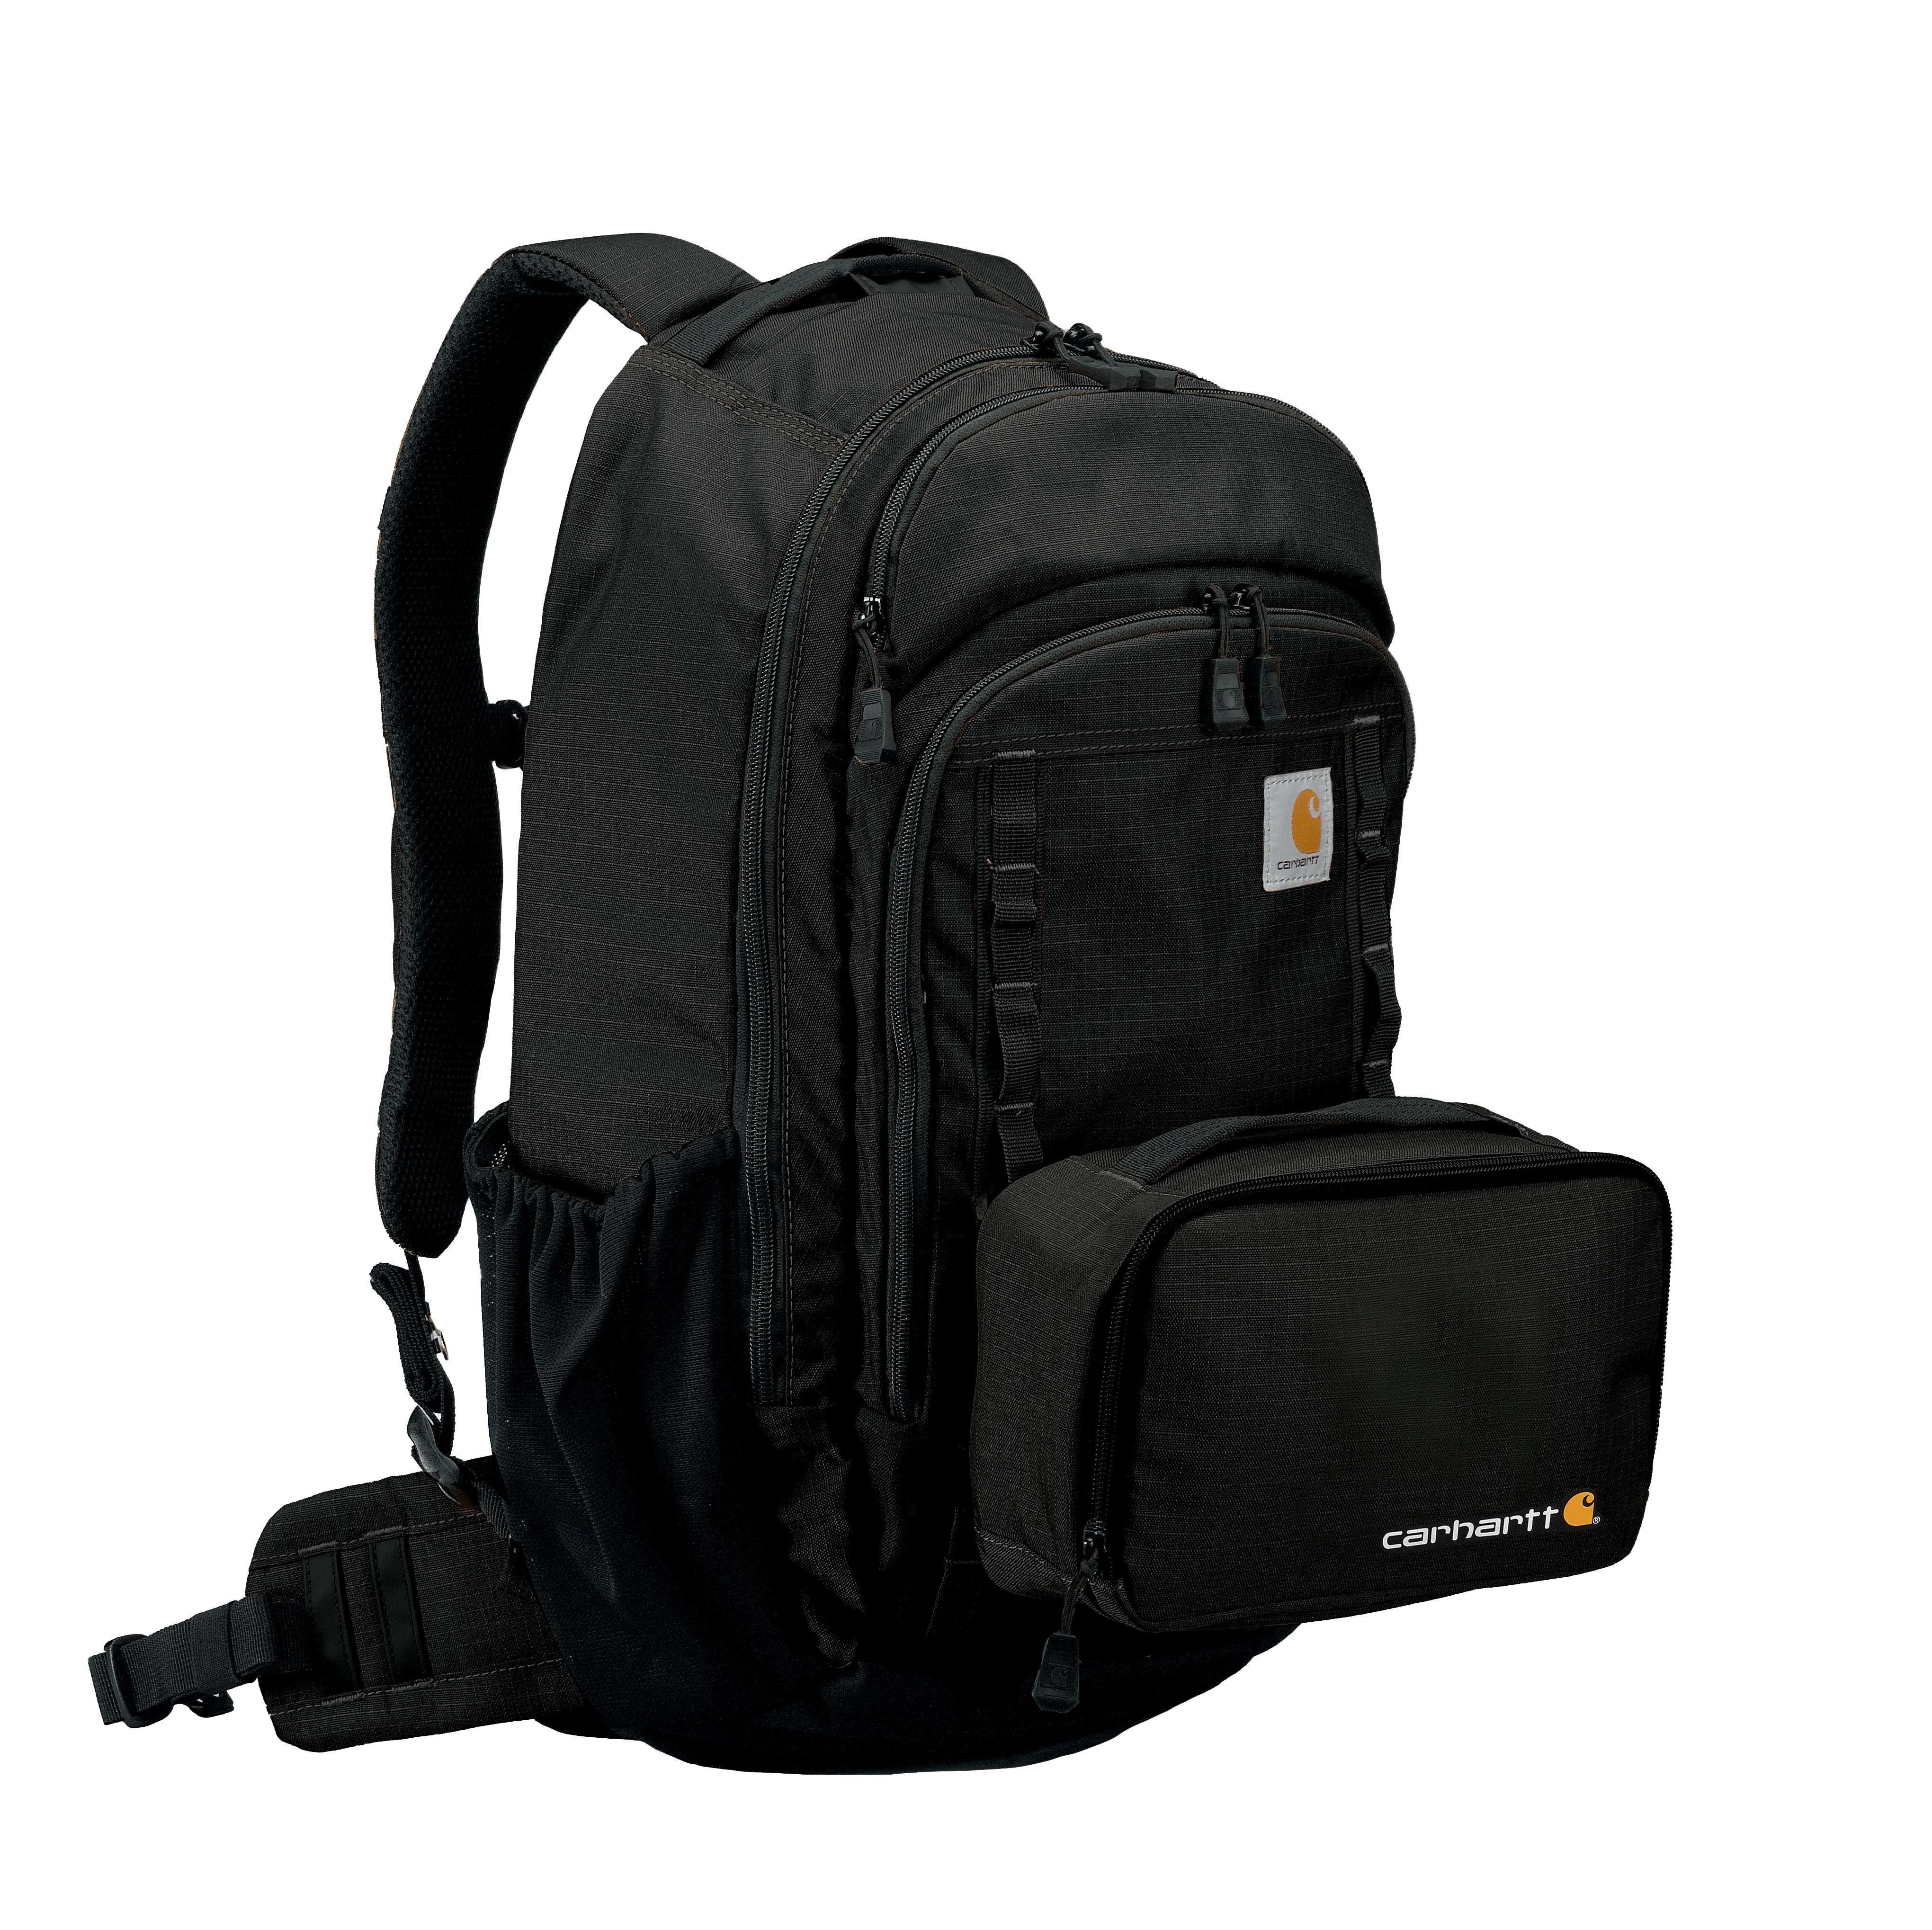 Carhartt Large Pack + 3 Can Insulated Cooler